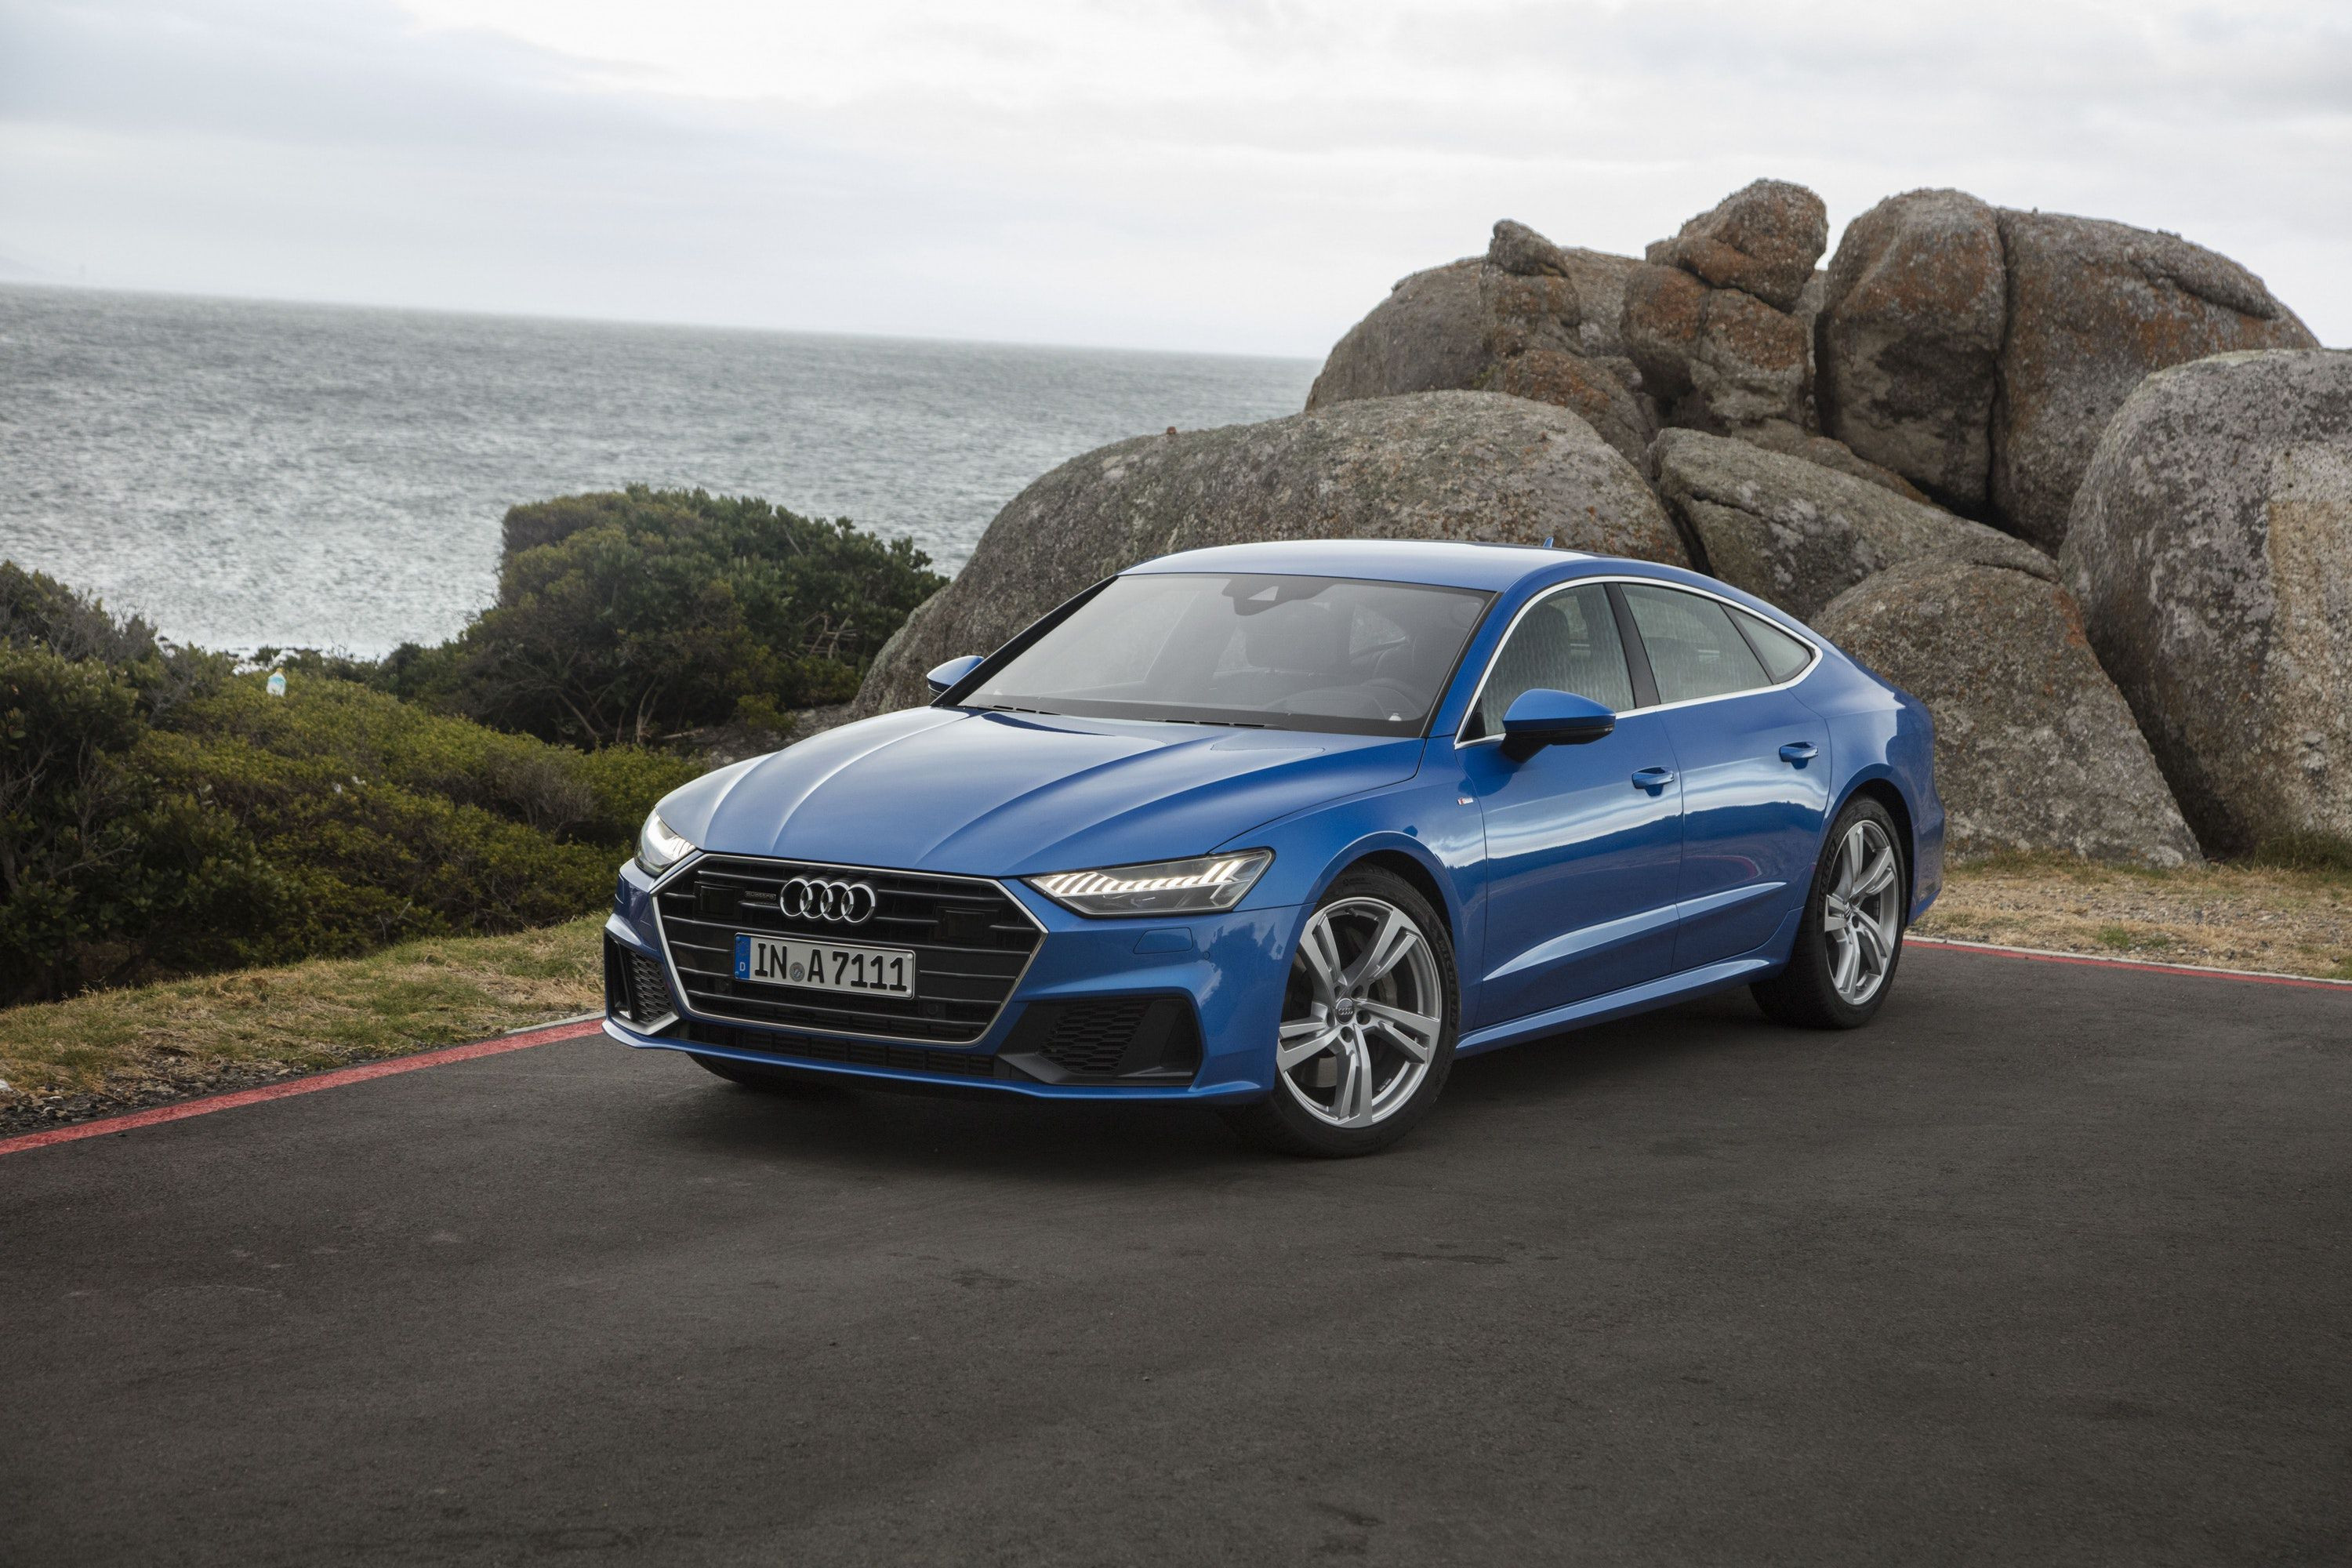 Front view of blue Audi A7 Sportback